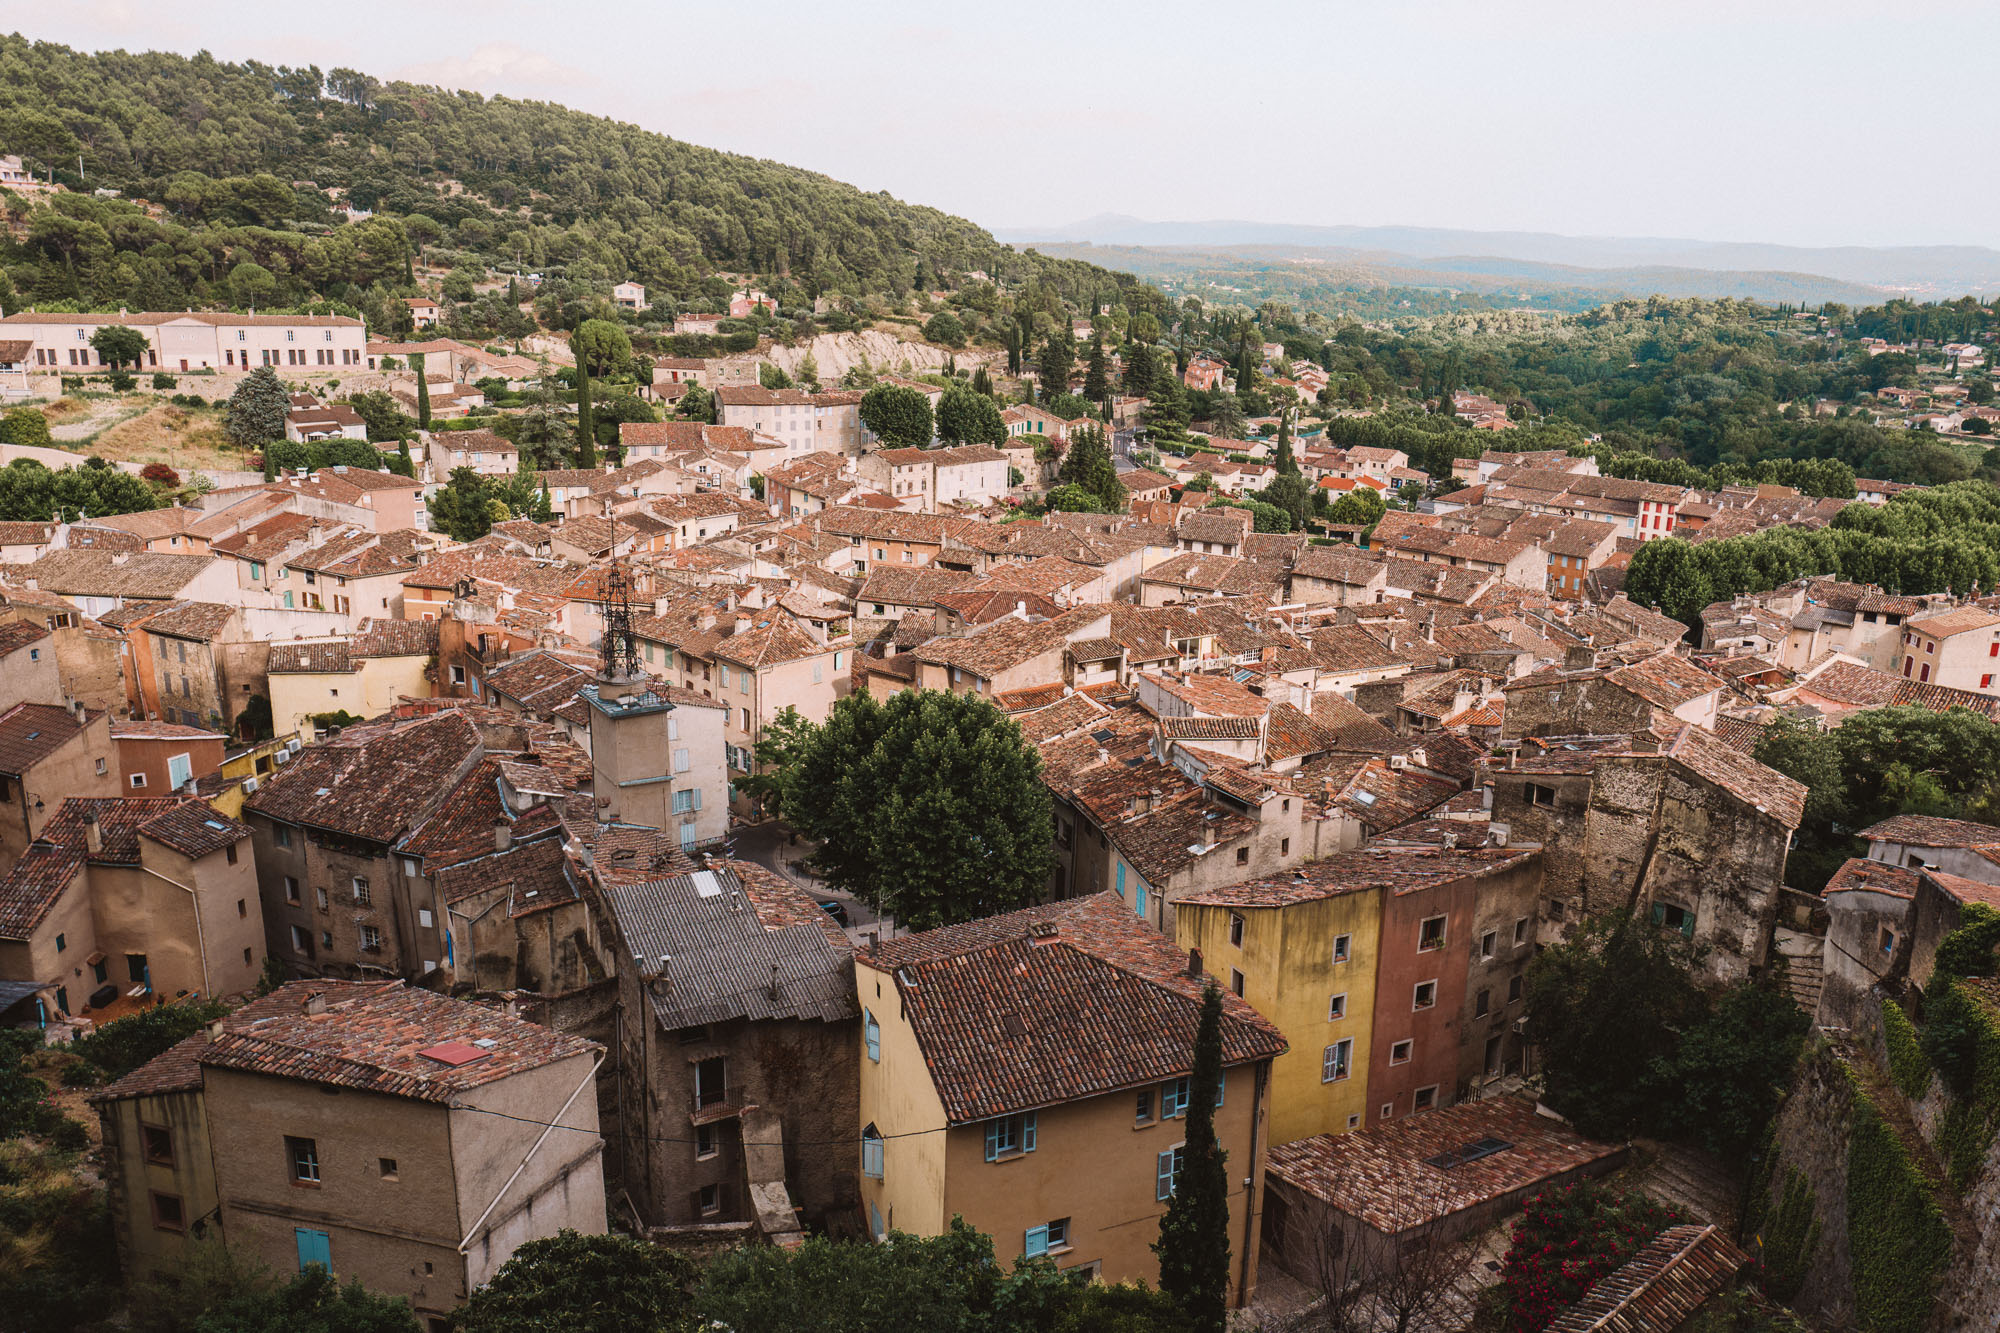 Cotignac town near Gorges du Verdon in the South of France